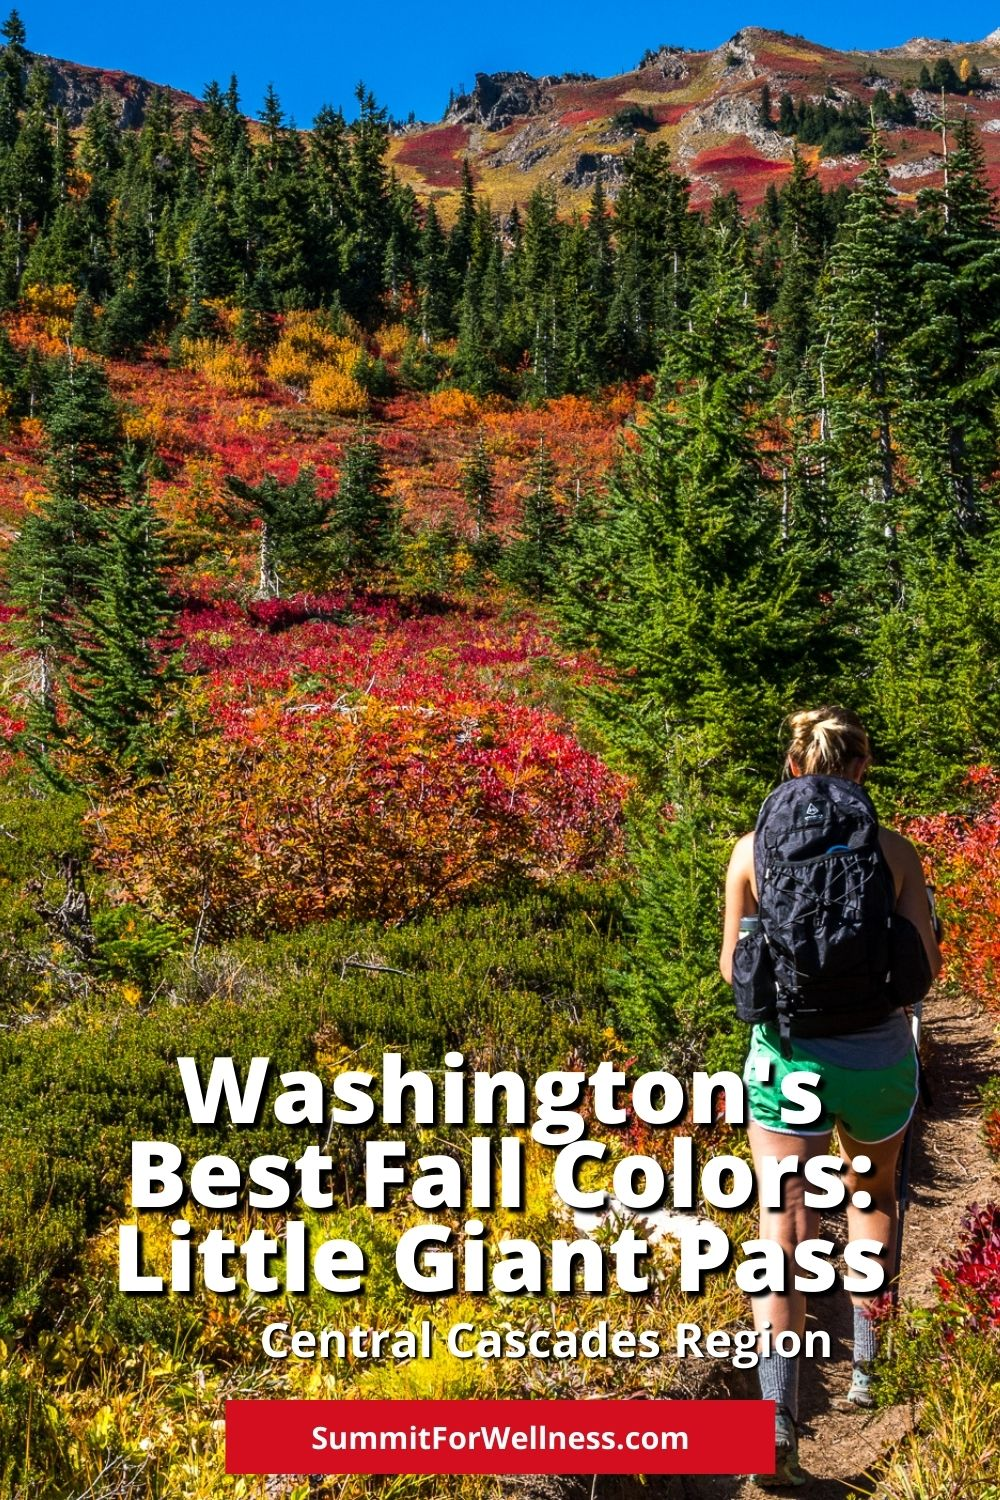 Hike to Little Giant Pass to Enjoy Amazing Fall Colors in Washington